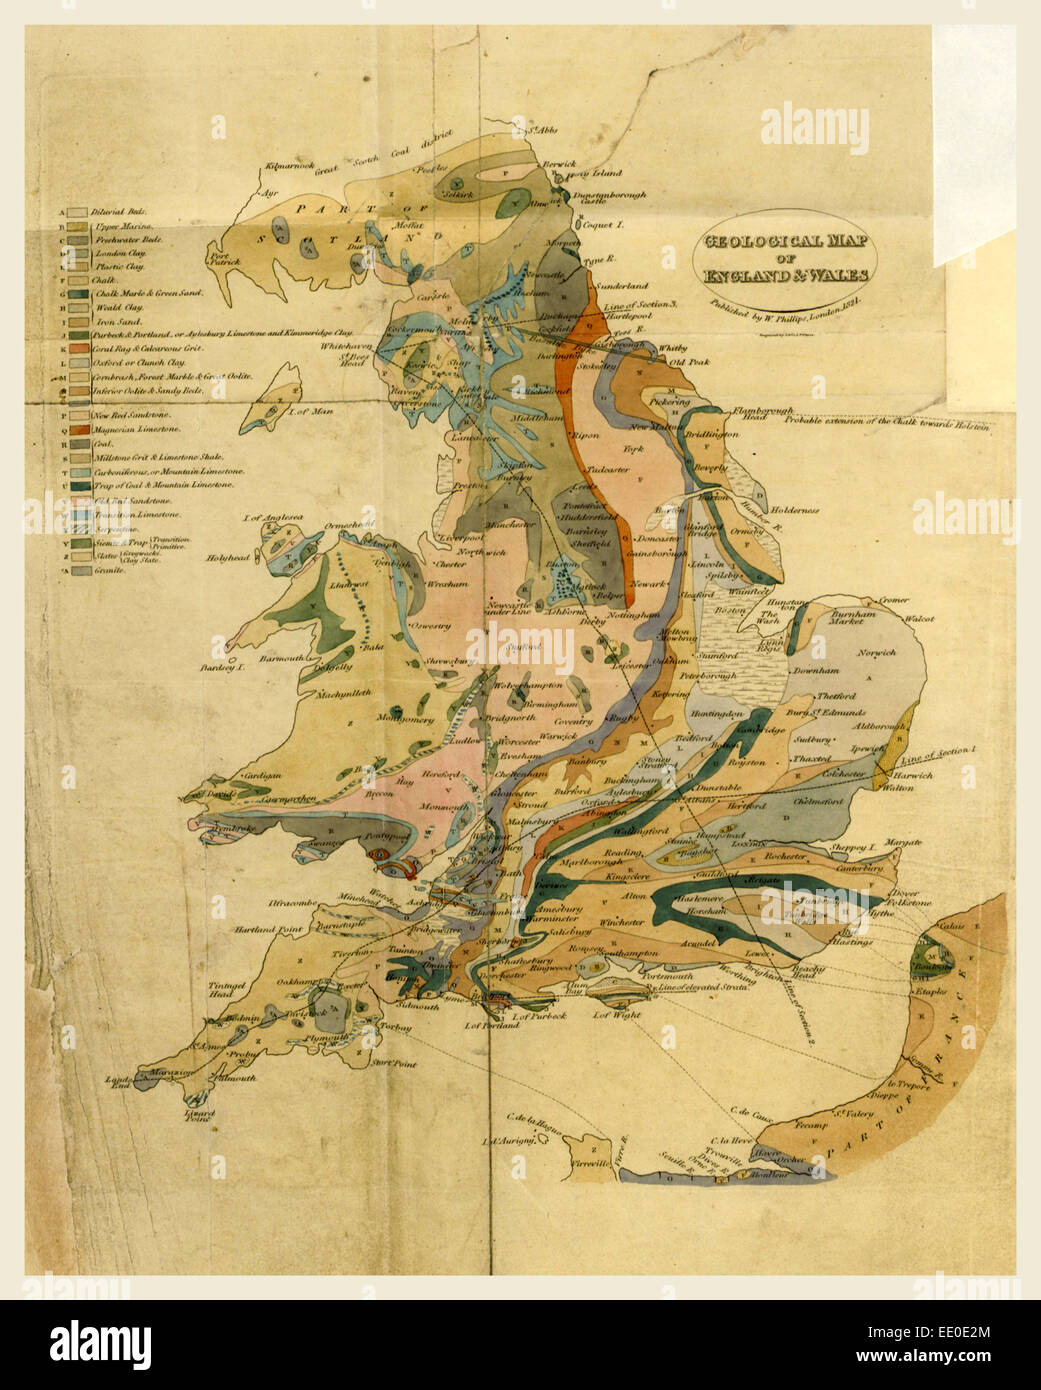 Outlines of the Geology of England and Wales, map, 19th century engraving - Stock Image